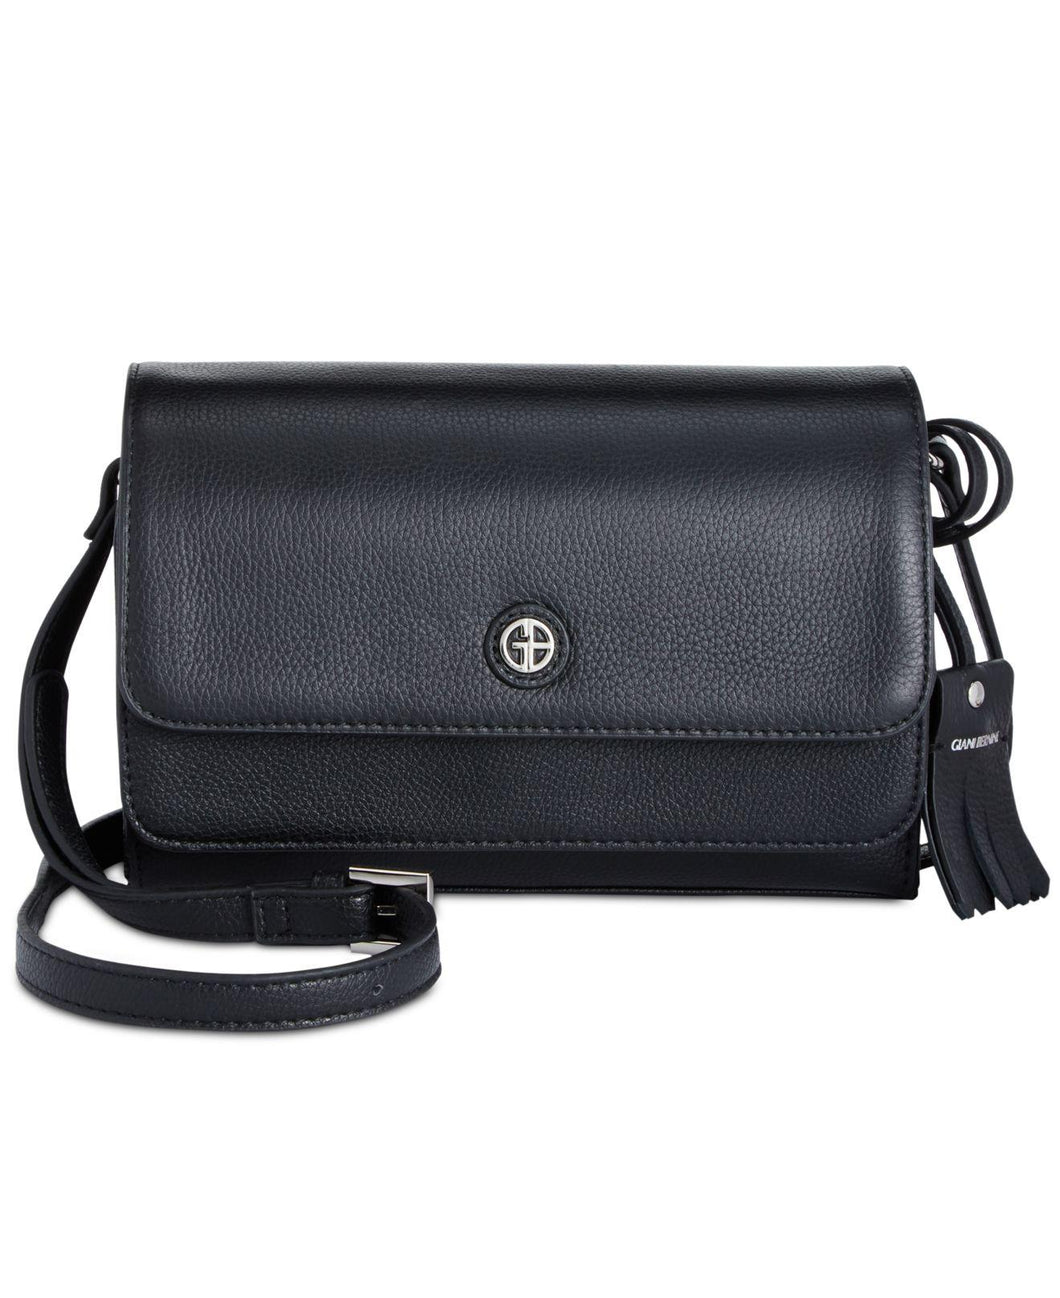 Giani Bernini Kilty Flap Crossbody Black